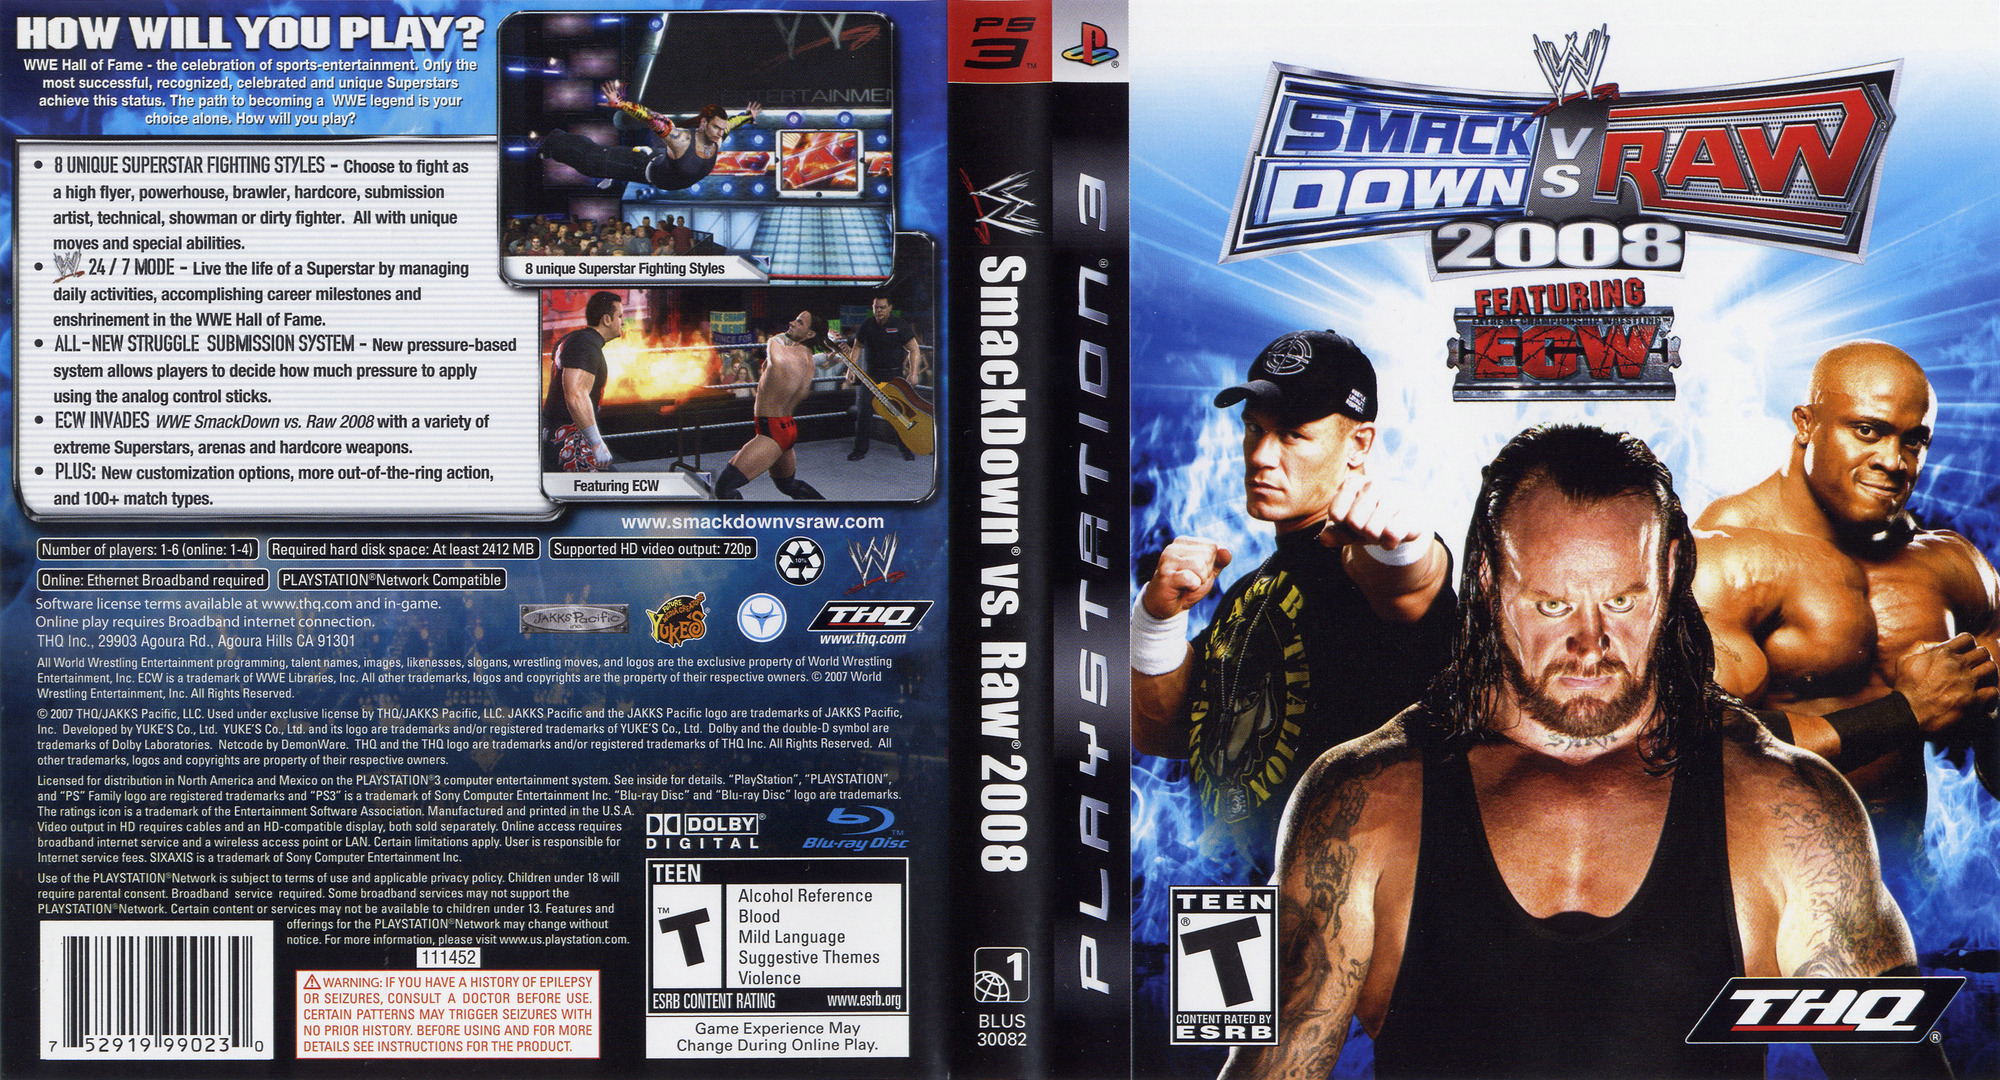 WWE SmackDown vs. Raw 2008 PS3 coverfullHQ (BLUS30082)